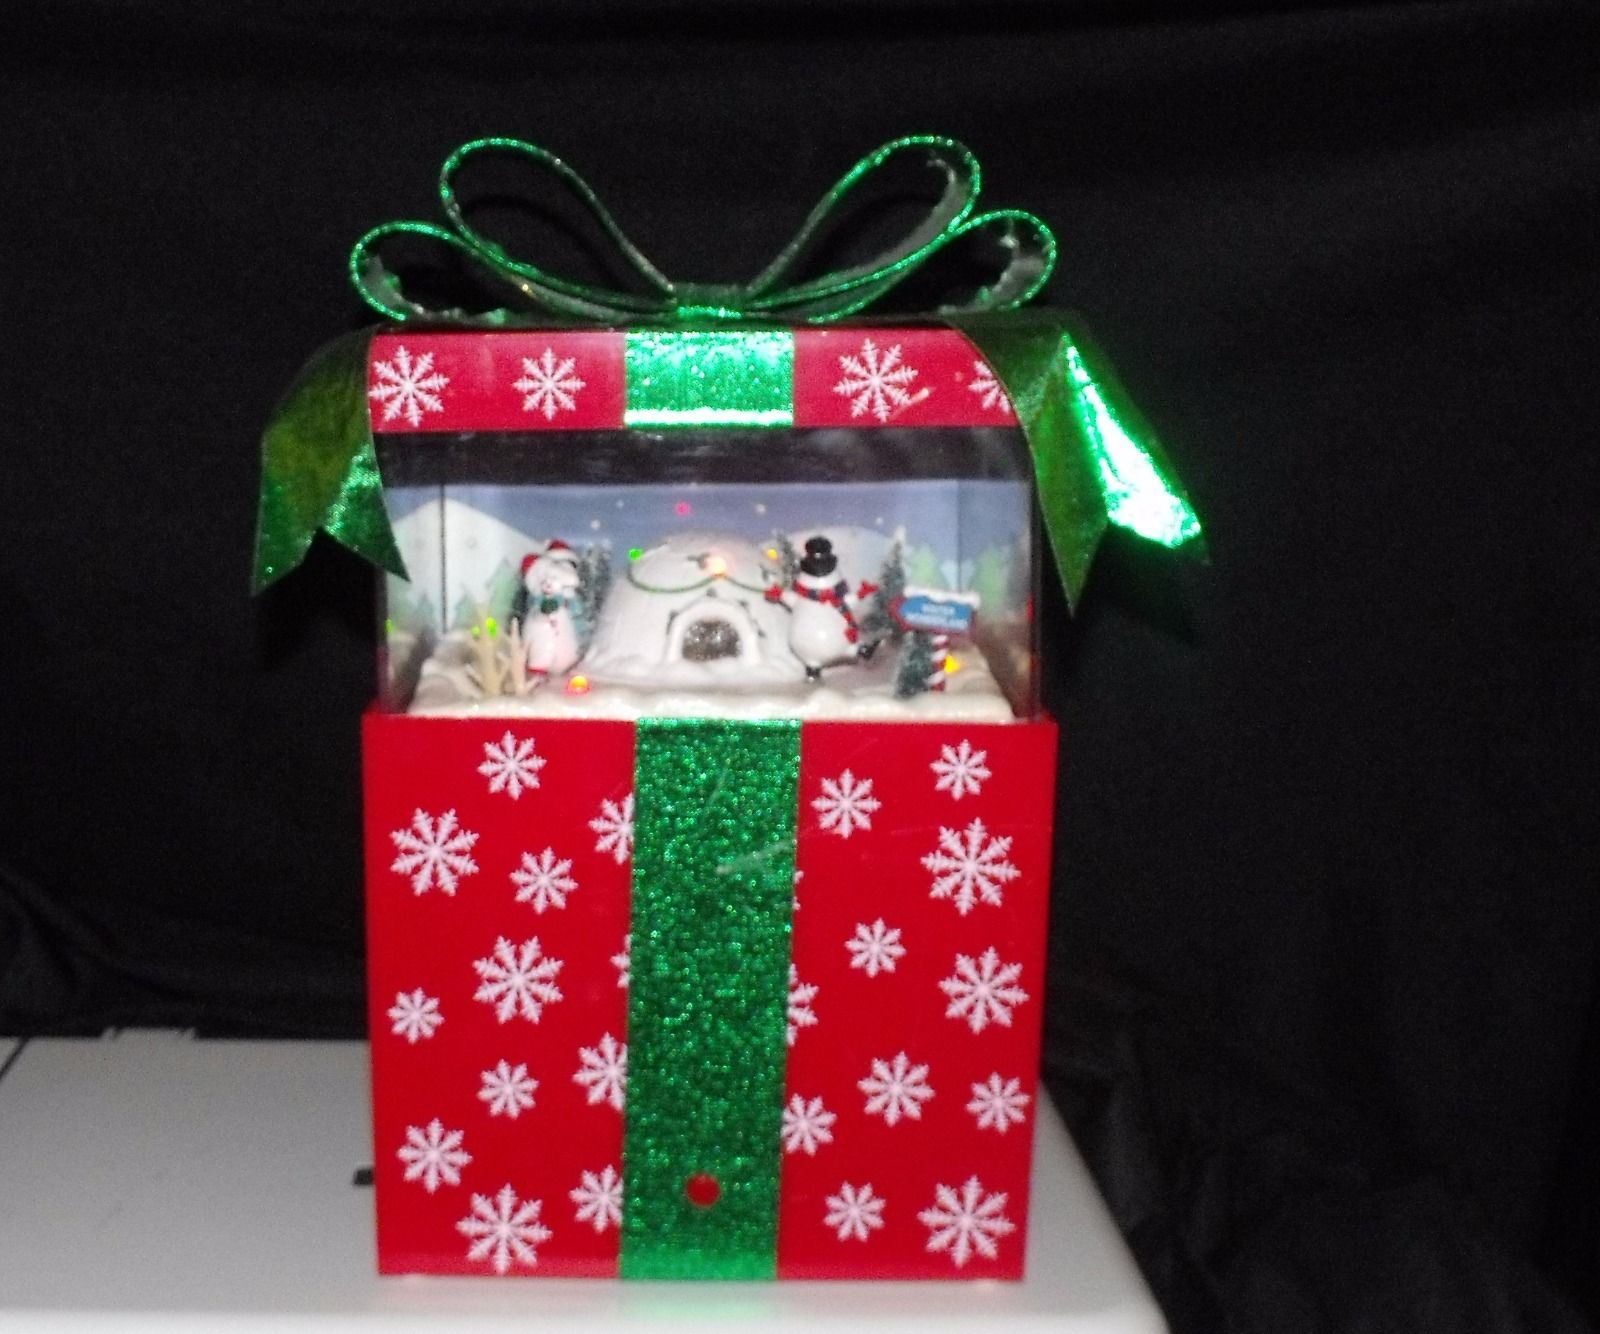 Musical christmas ornaments that play music - Gemmy Musical Pop Up Christmas Present Music Box Plays Popular Songs Music 4 Jpg